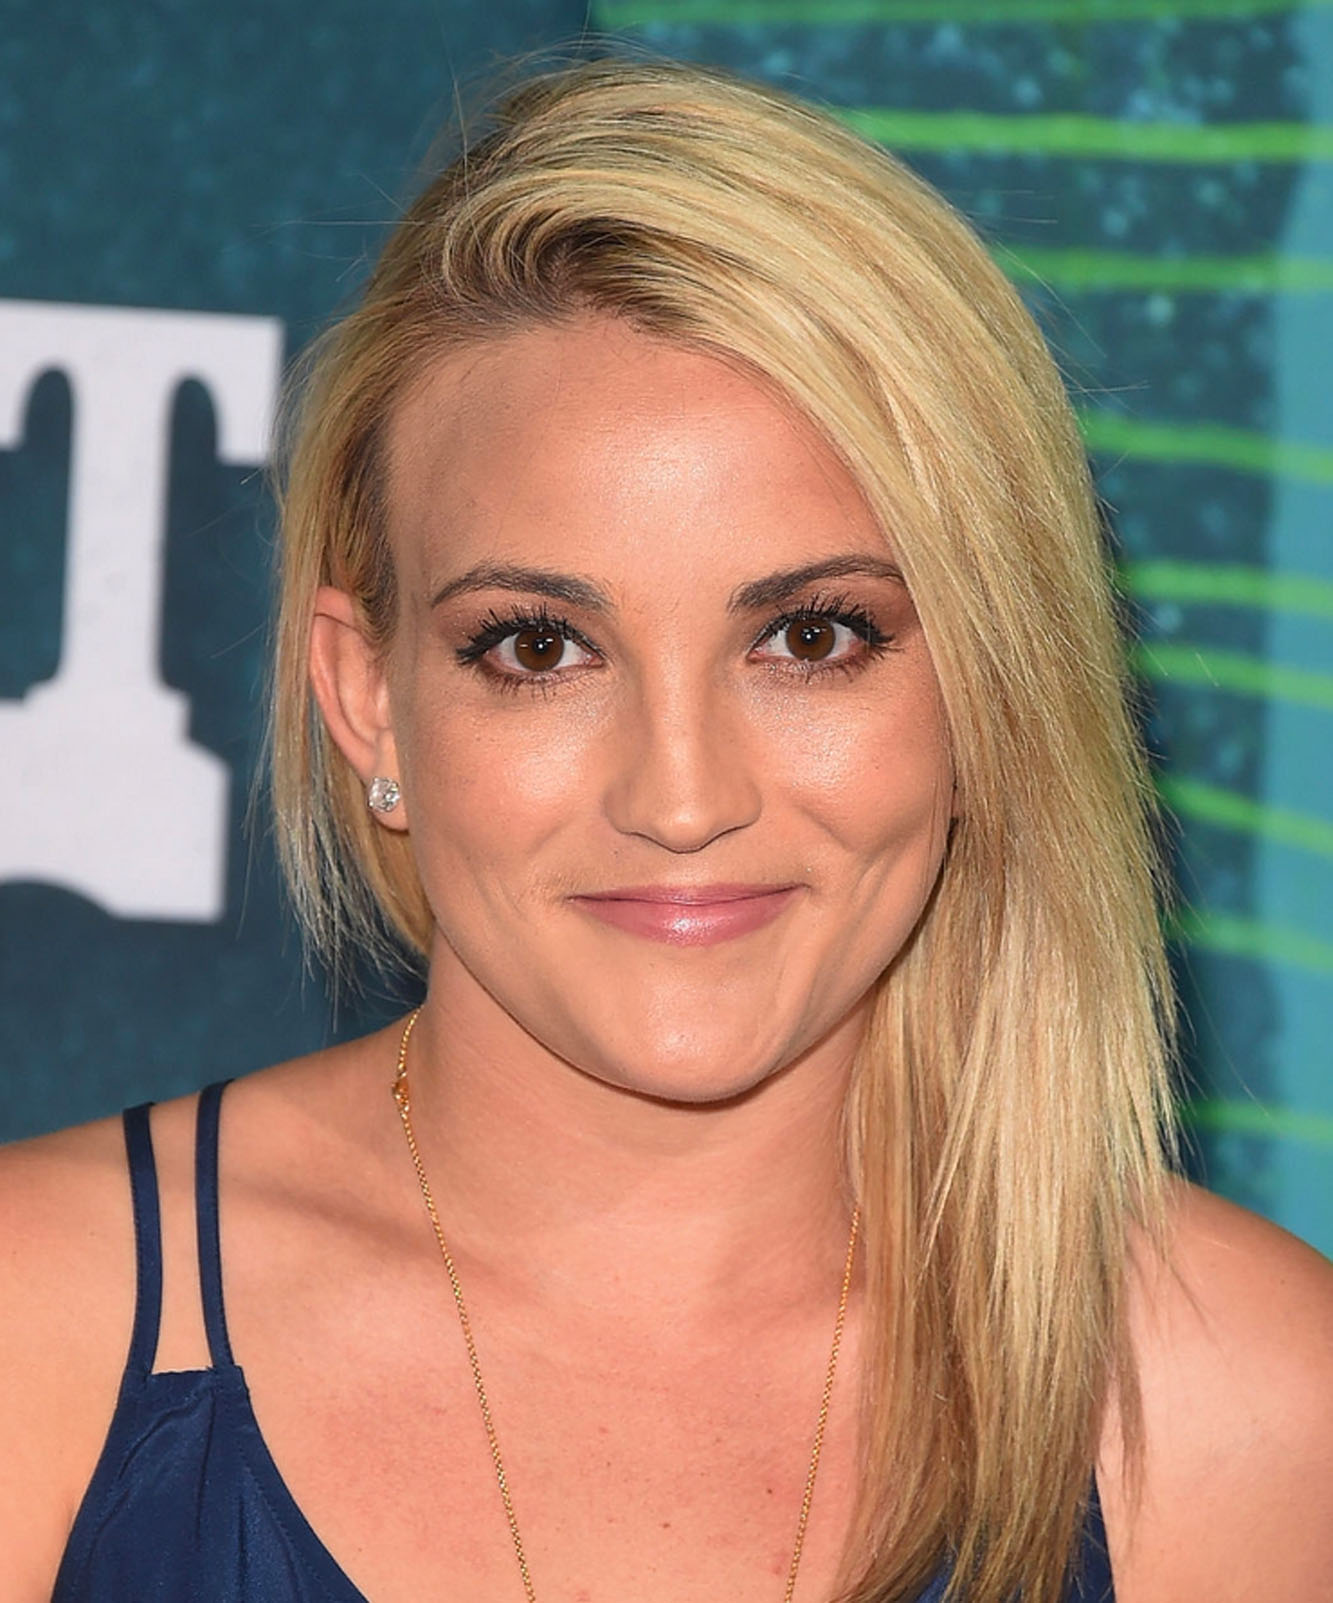 Jamie Lynn Spears på CMT Music Awards i Nashville, Tennessee i 2015 (Jason Merritt/Getty Images)